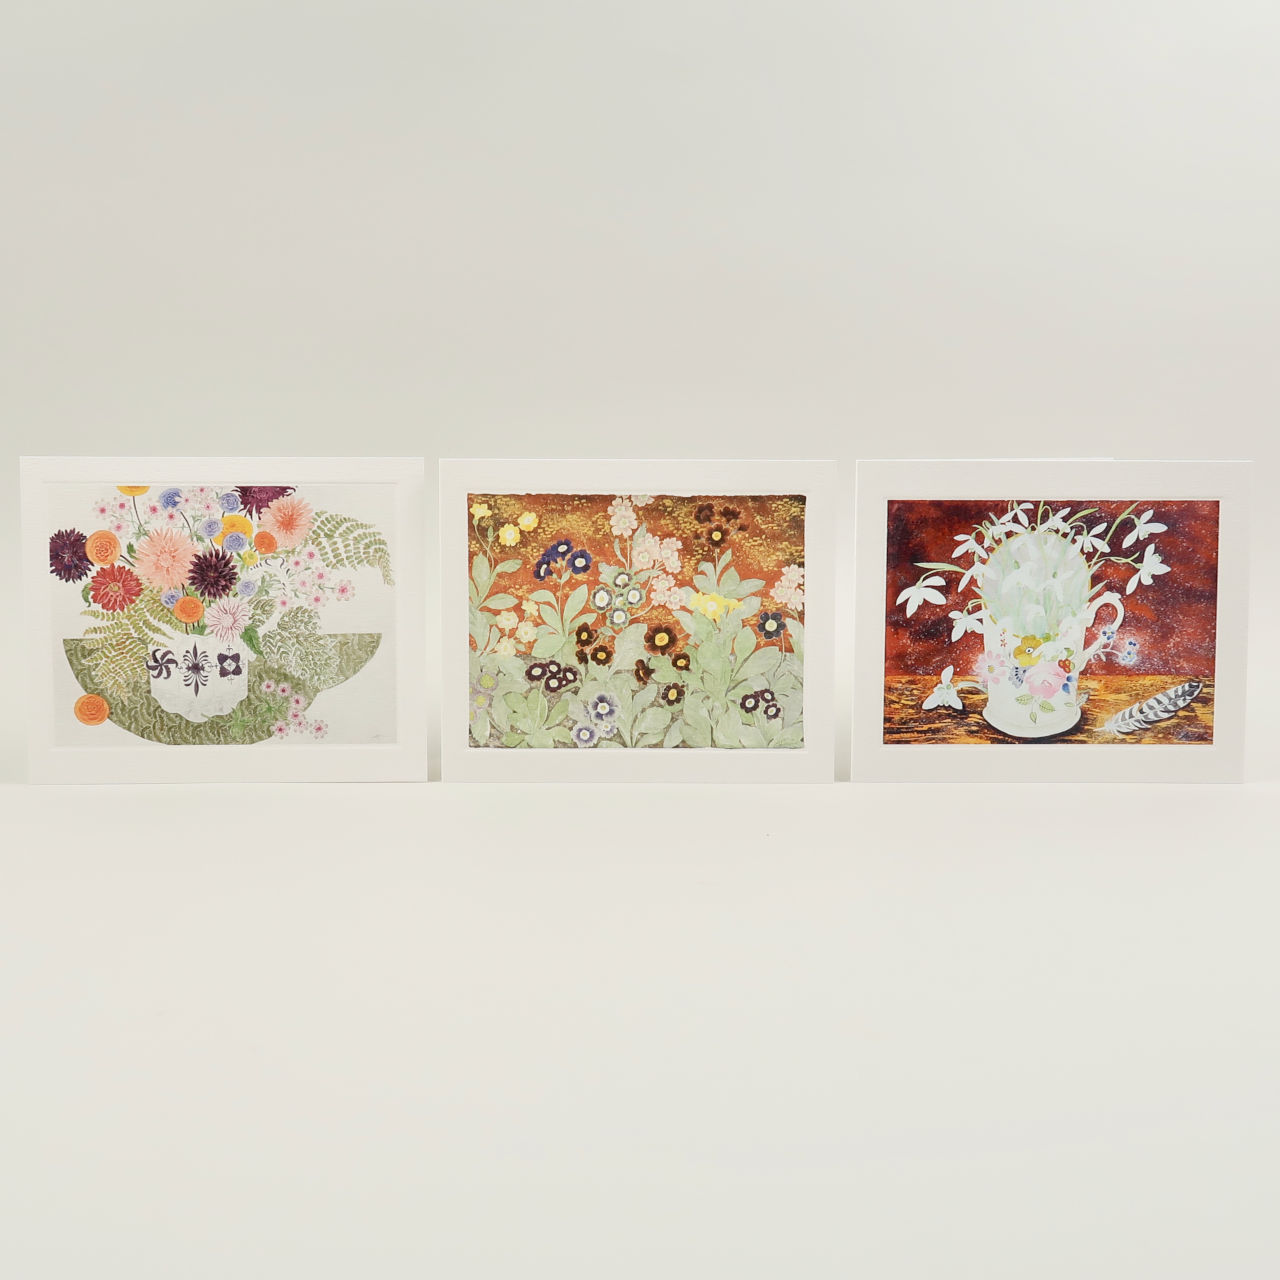 Angie Lewin Greetings Cards from Art Angels